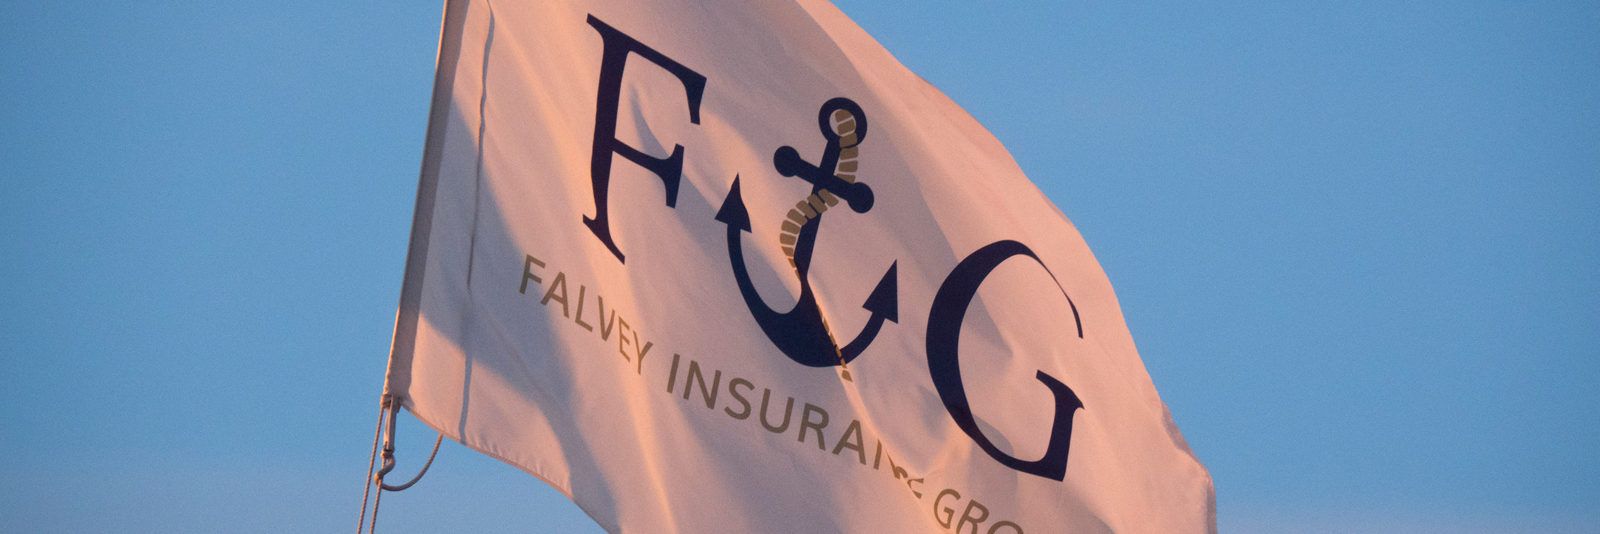 A flag representing the Falvey Insurance Group marine insurance mission is waving in the breeze